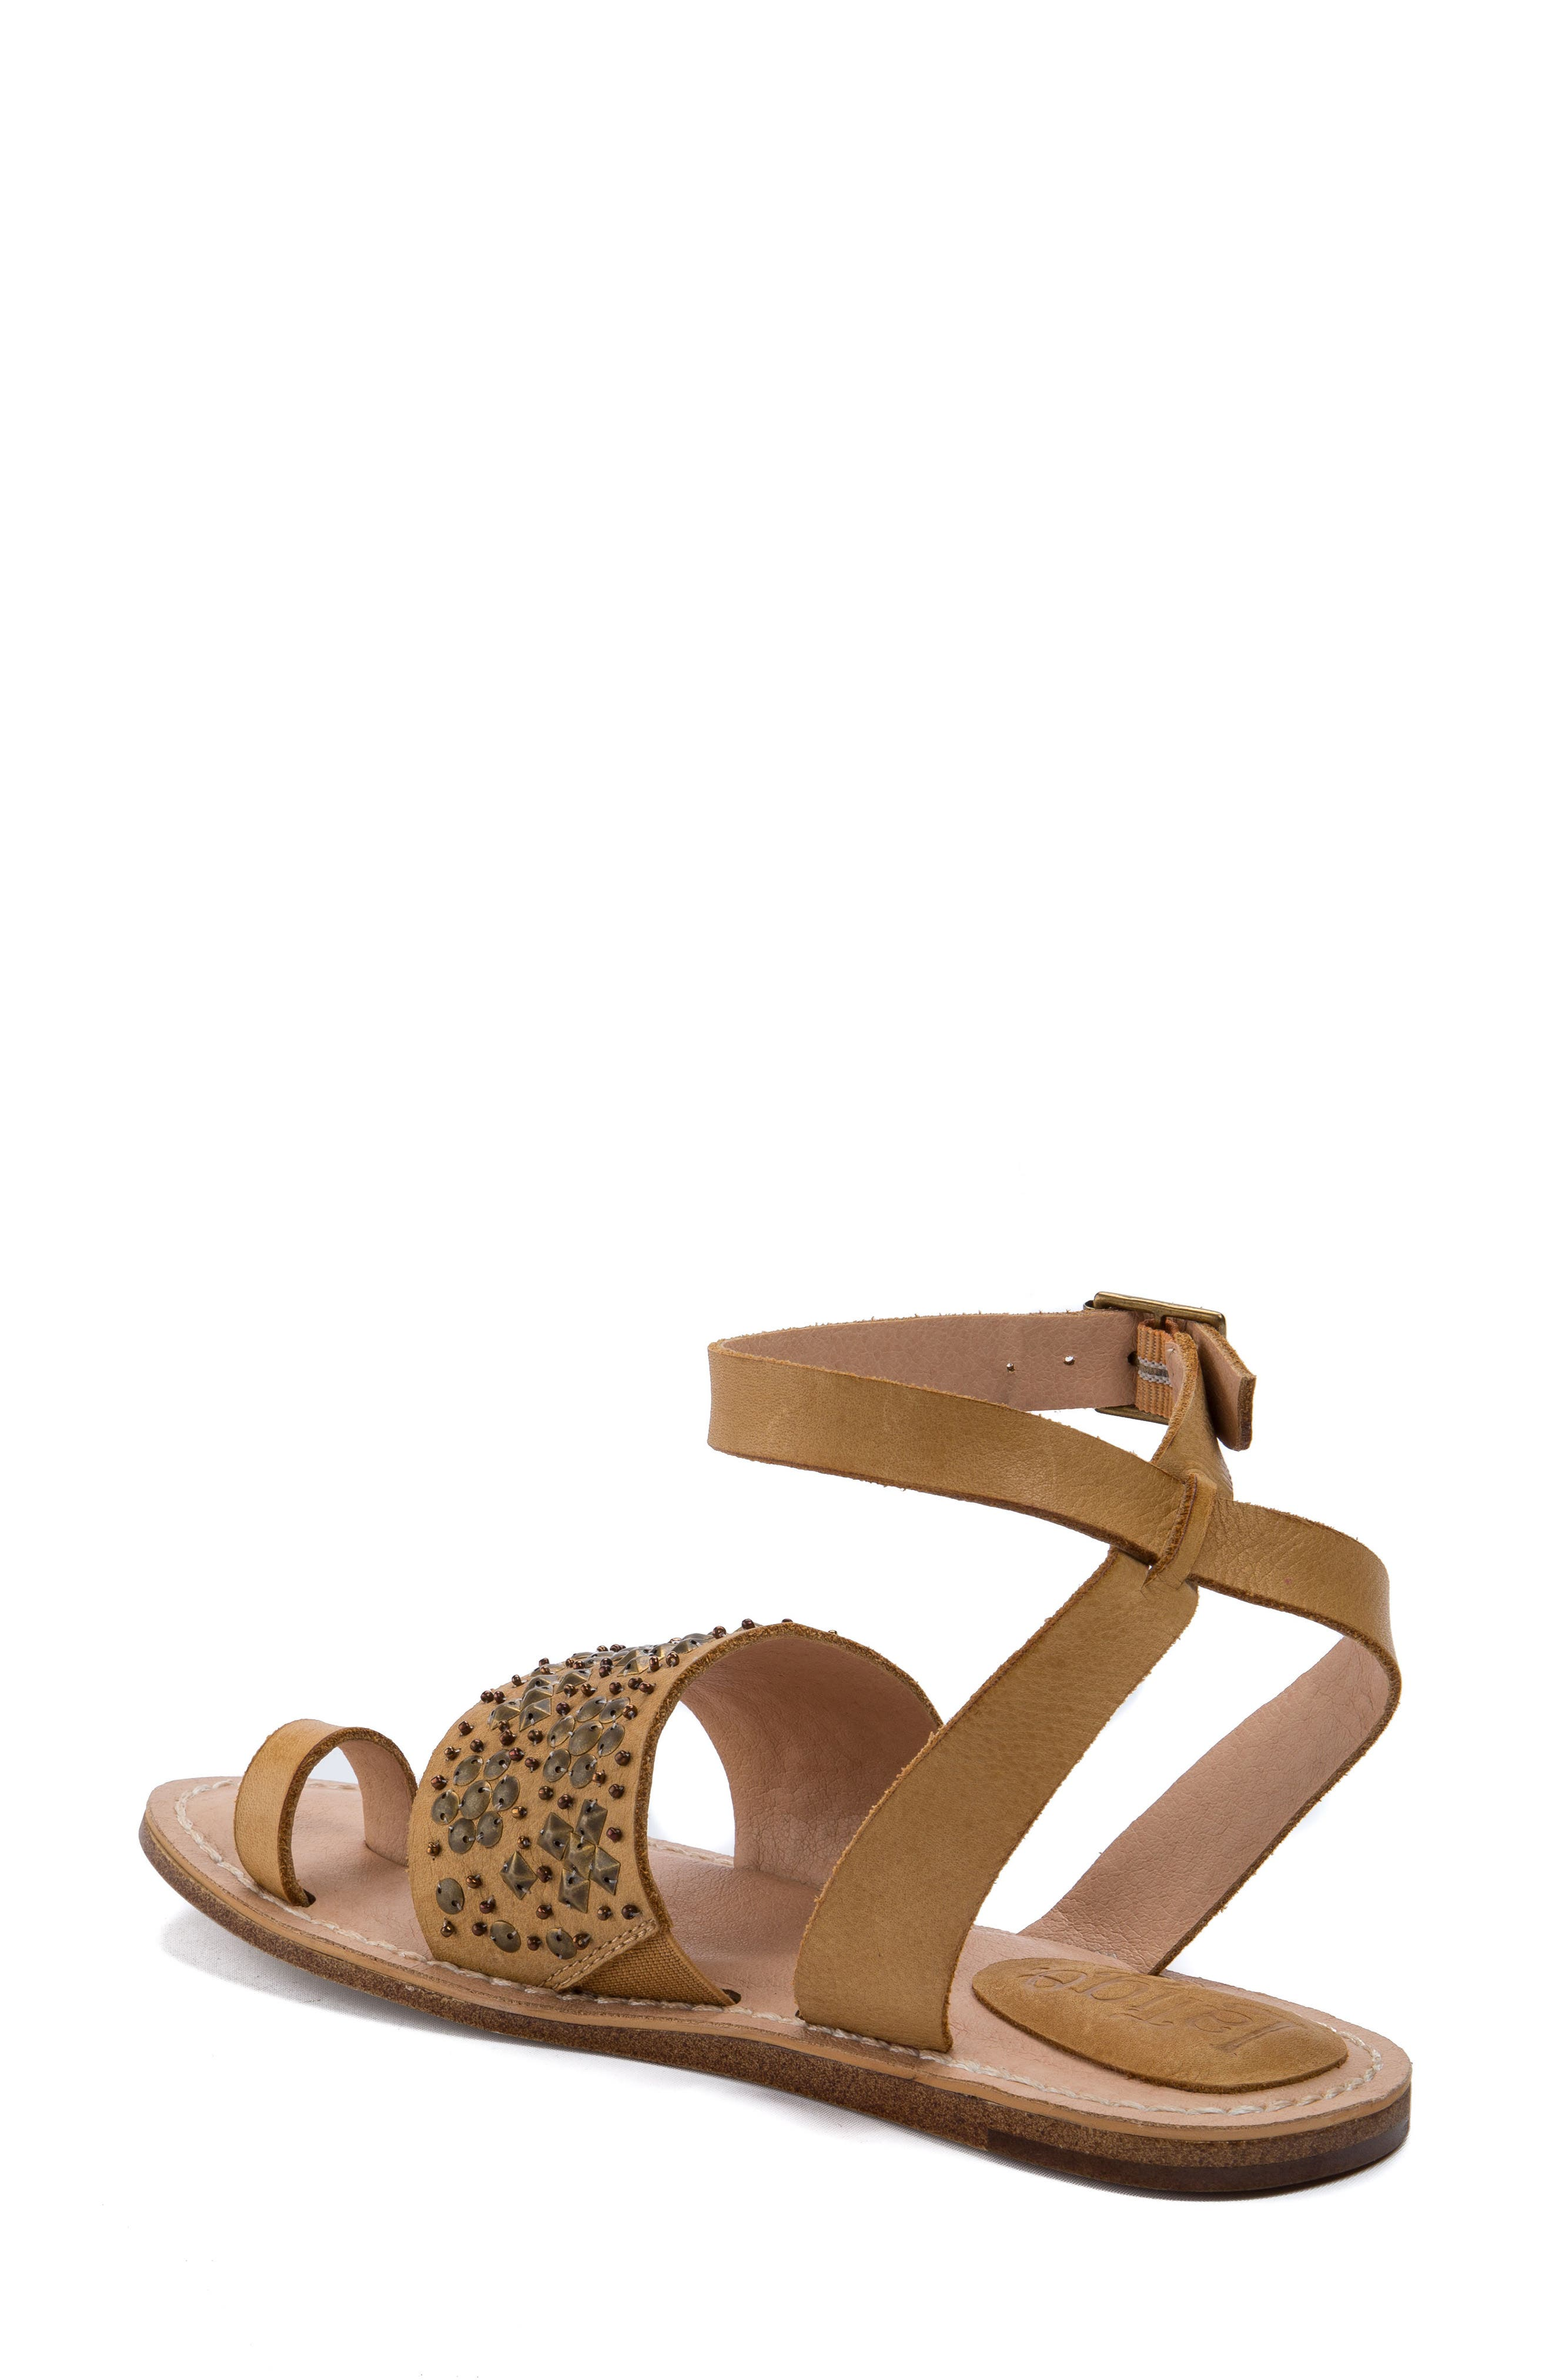 Vera Embellished Sandal,                             Alternate thumbnail 5, color,